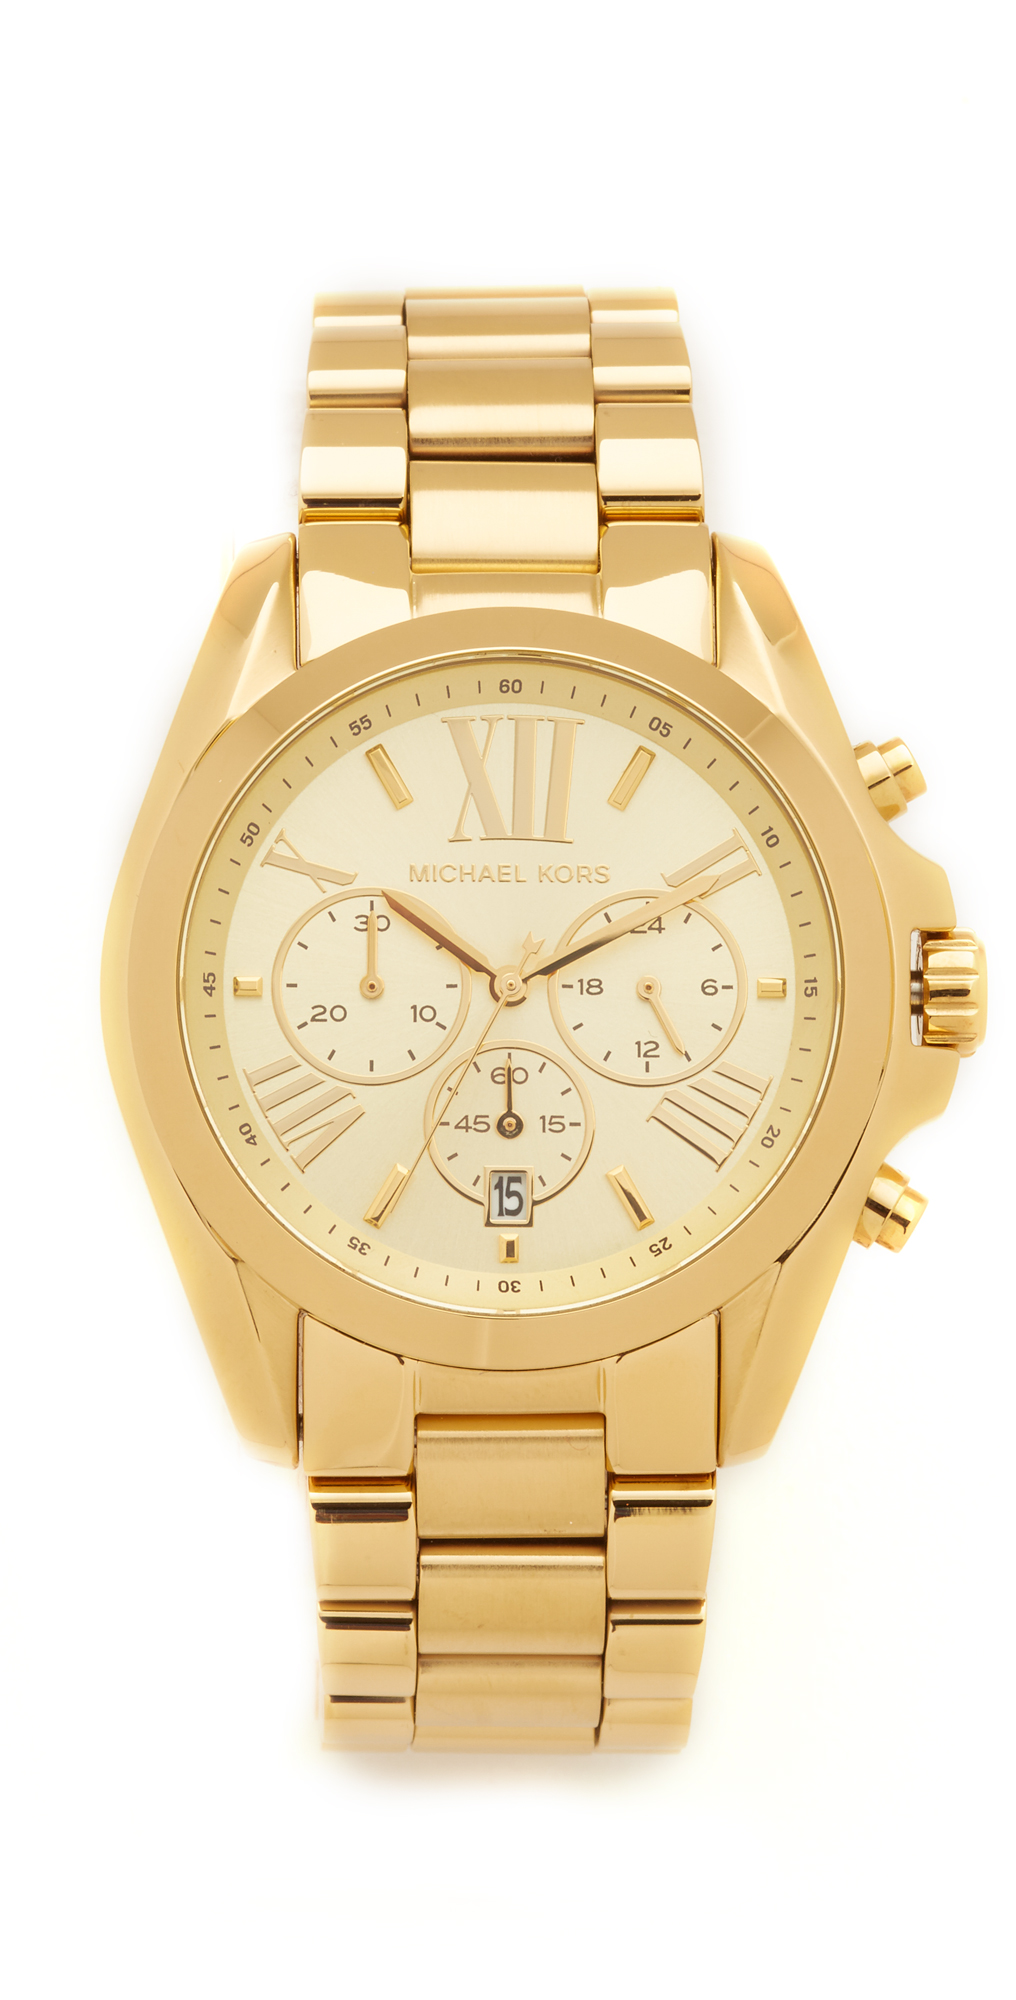 Bradshaw Chronograph Watch Michael Kors